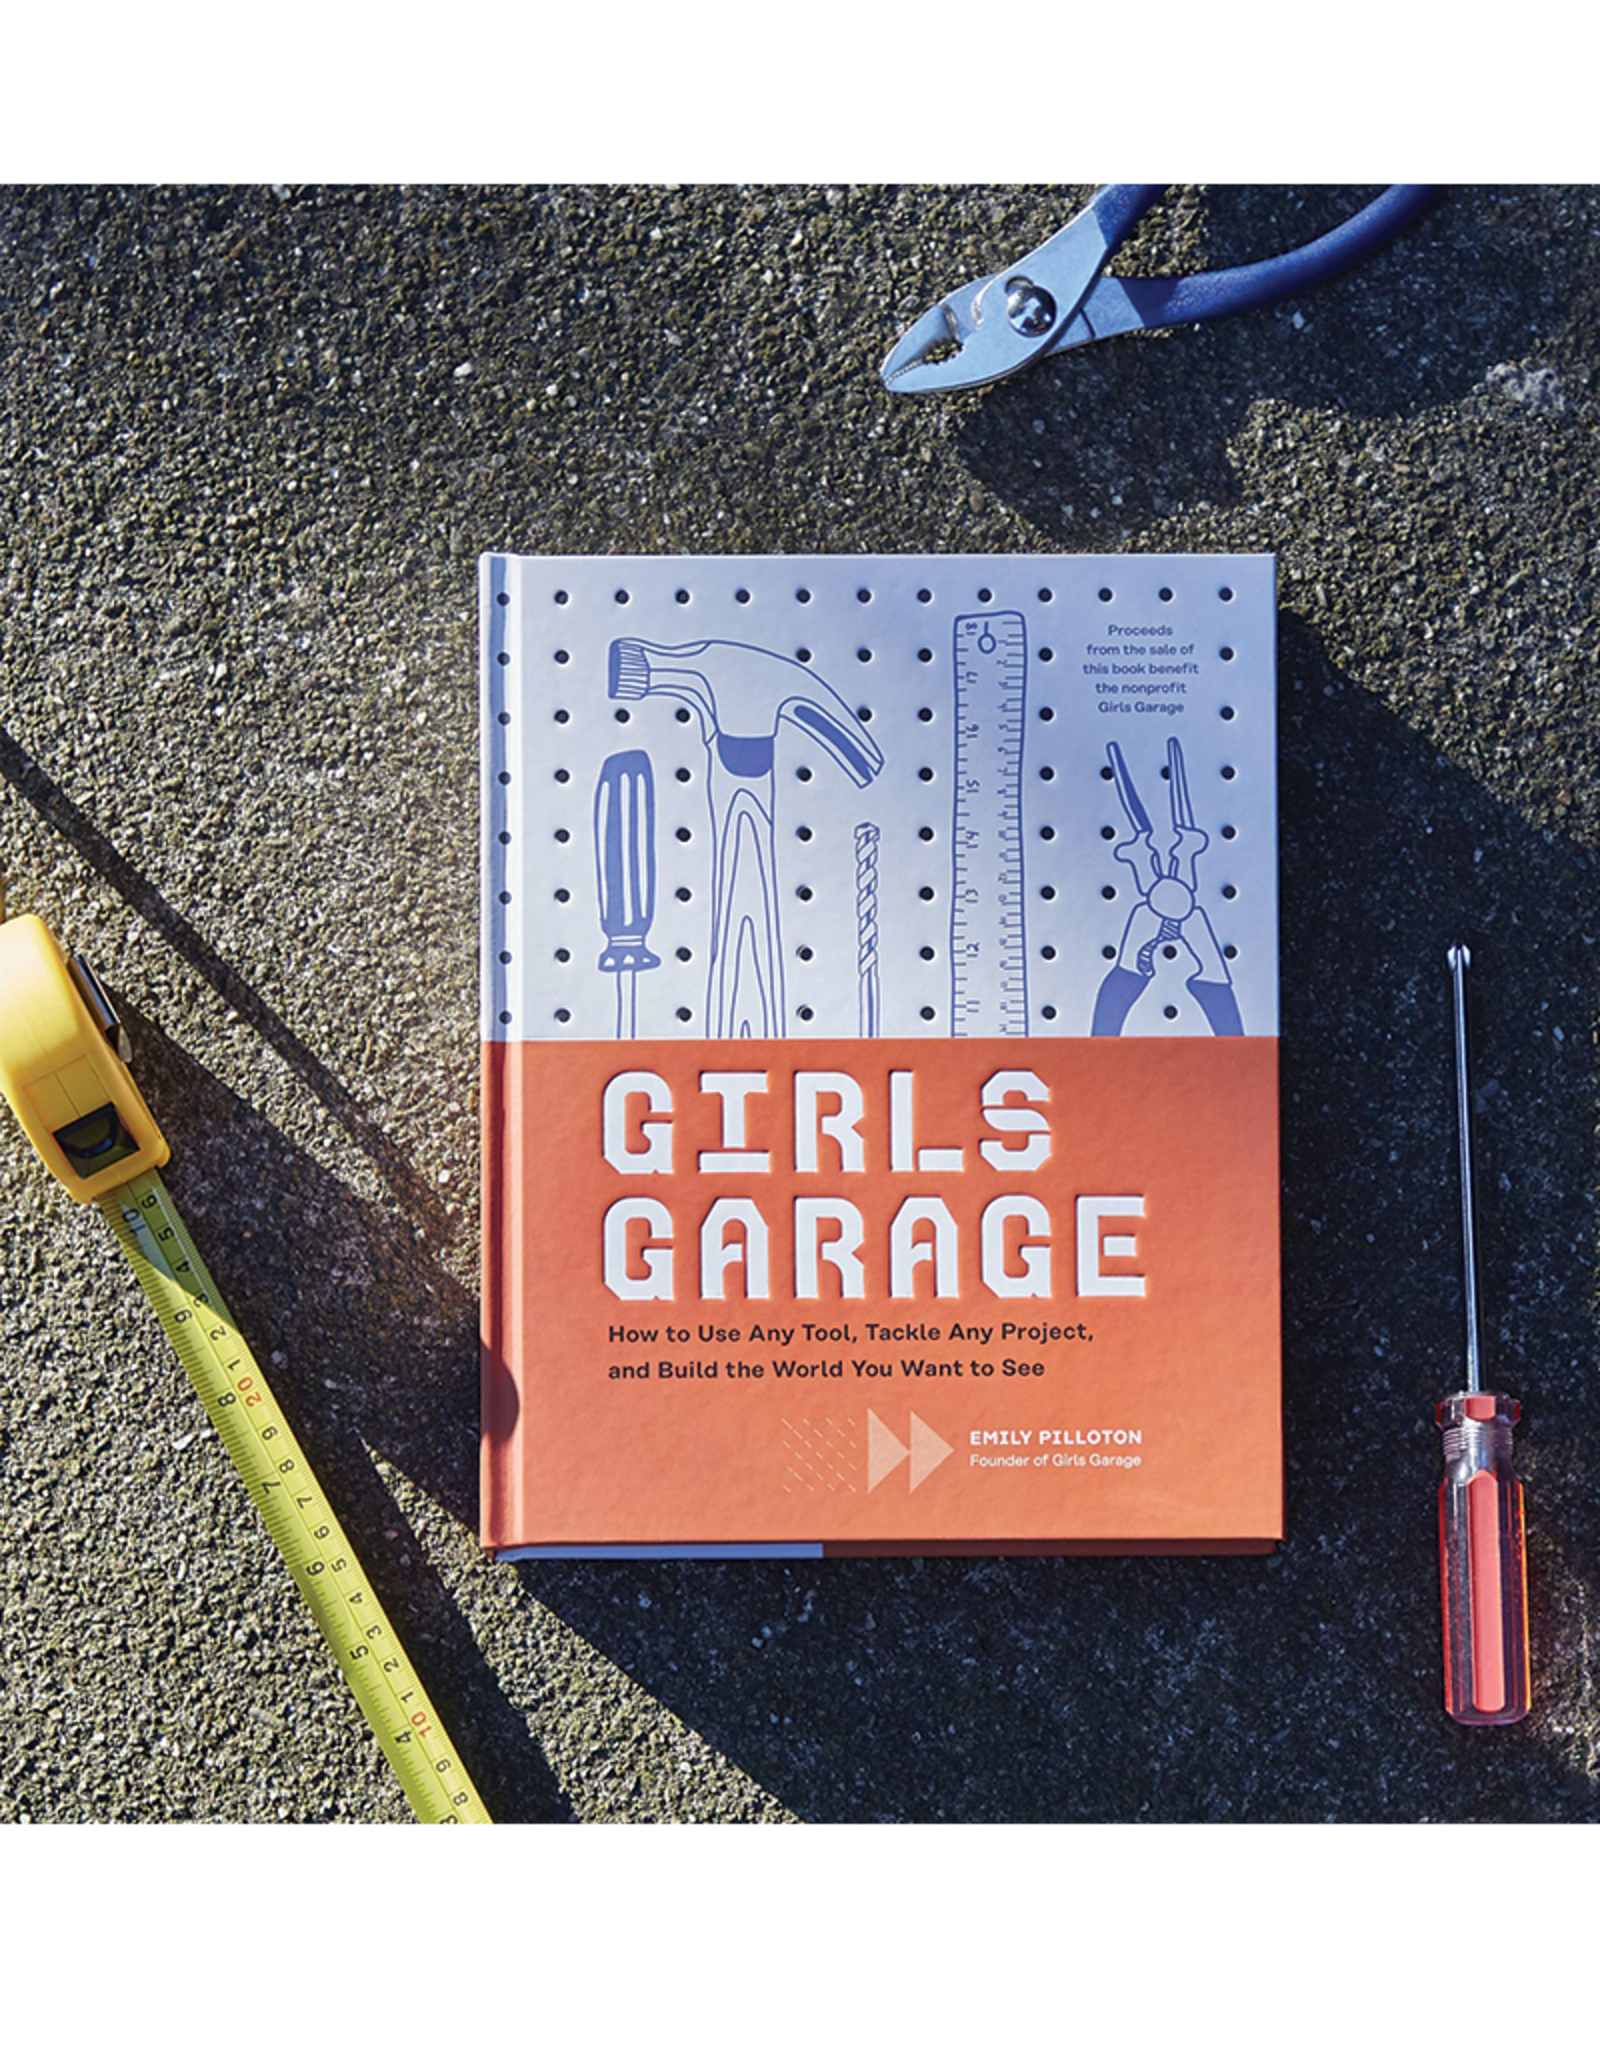 Girls Garage:  How to Use Any Tool, Tackle Any Project, and Build the World You Want to See